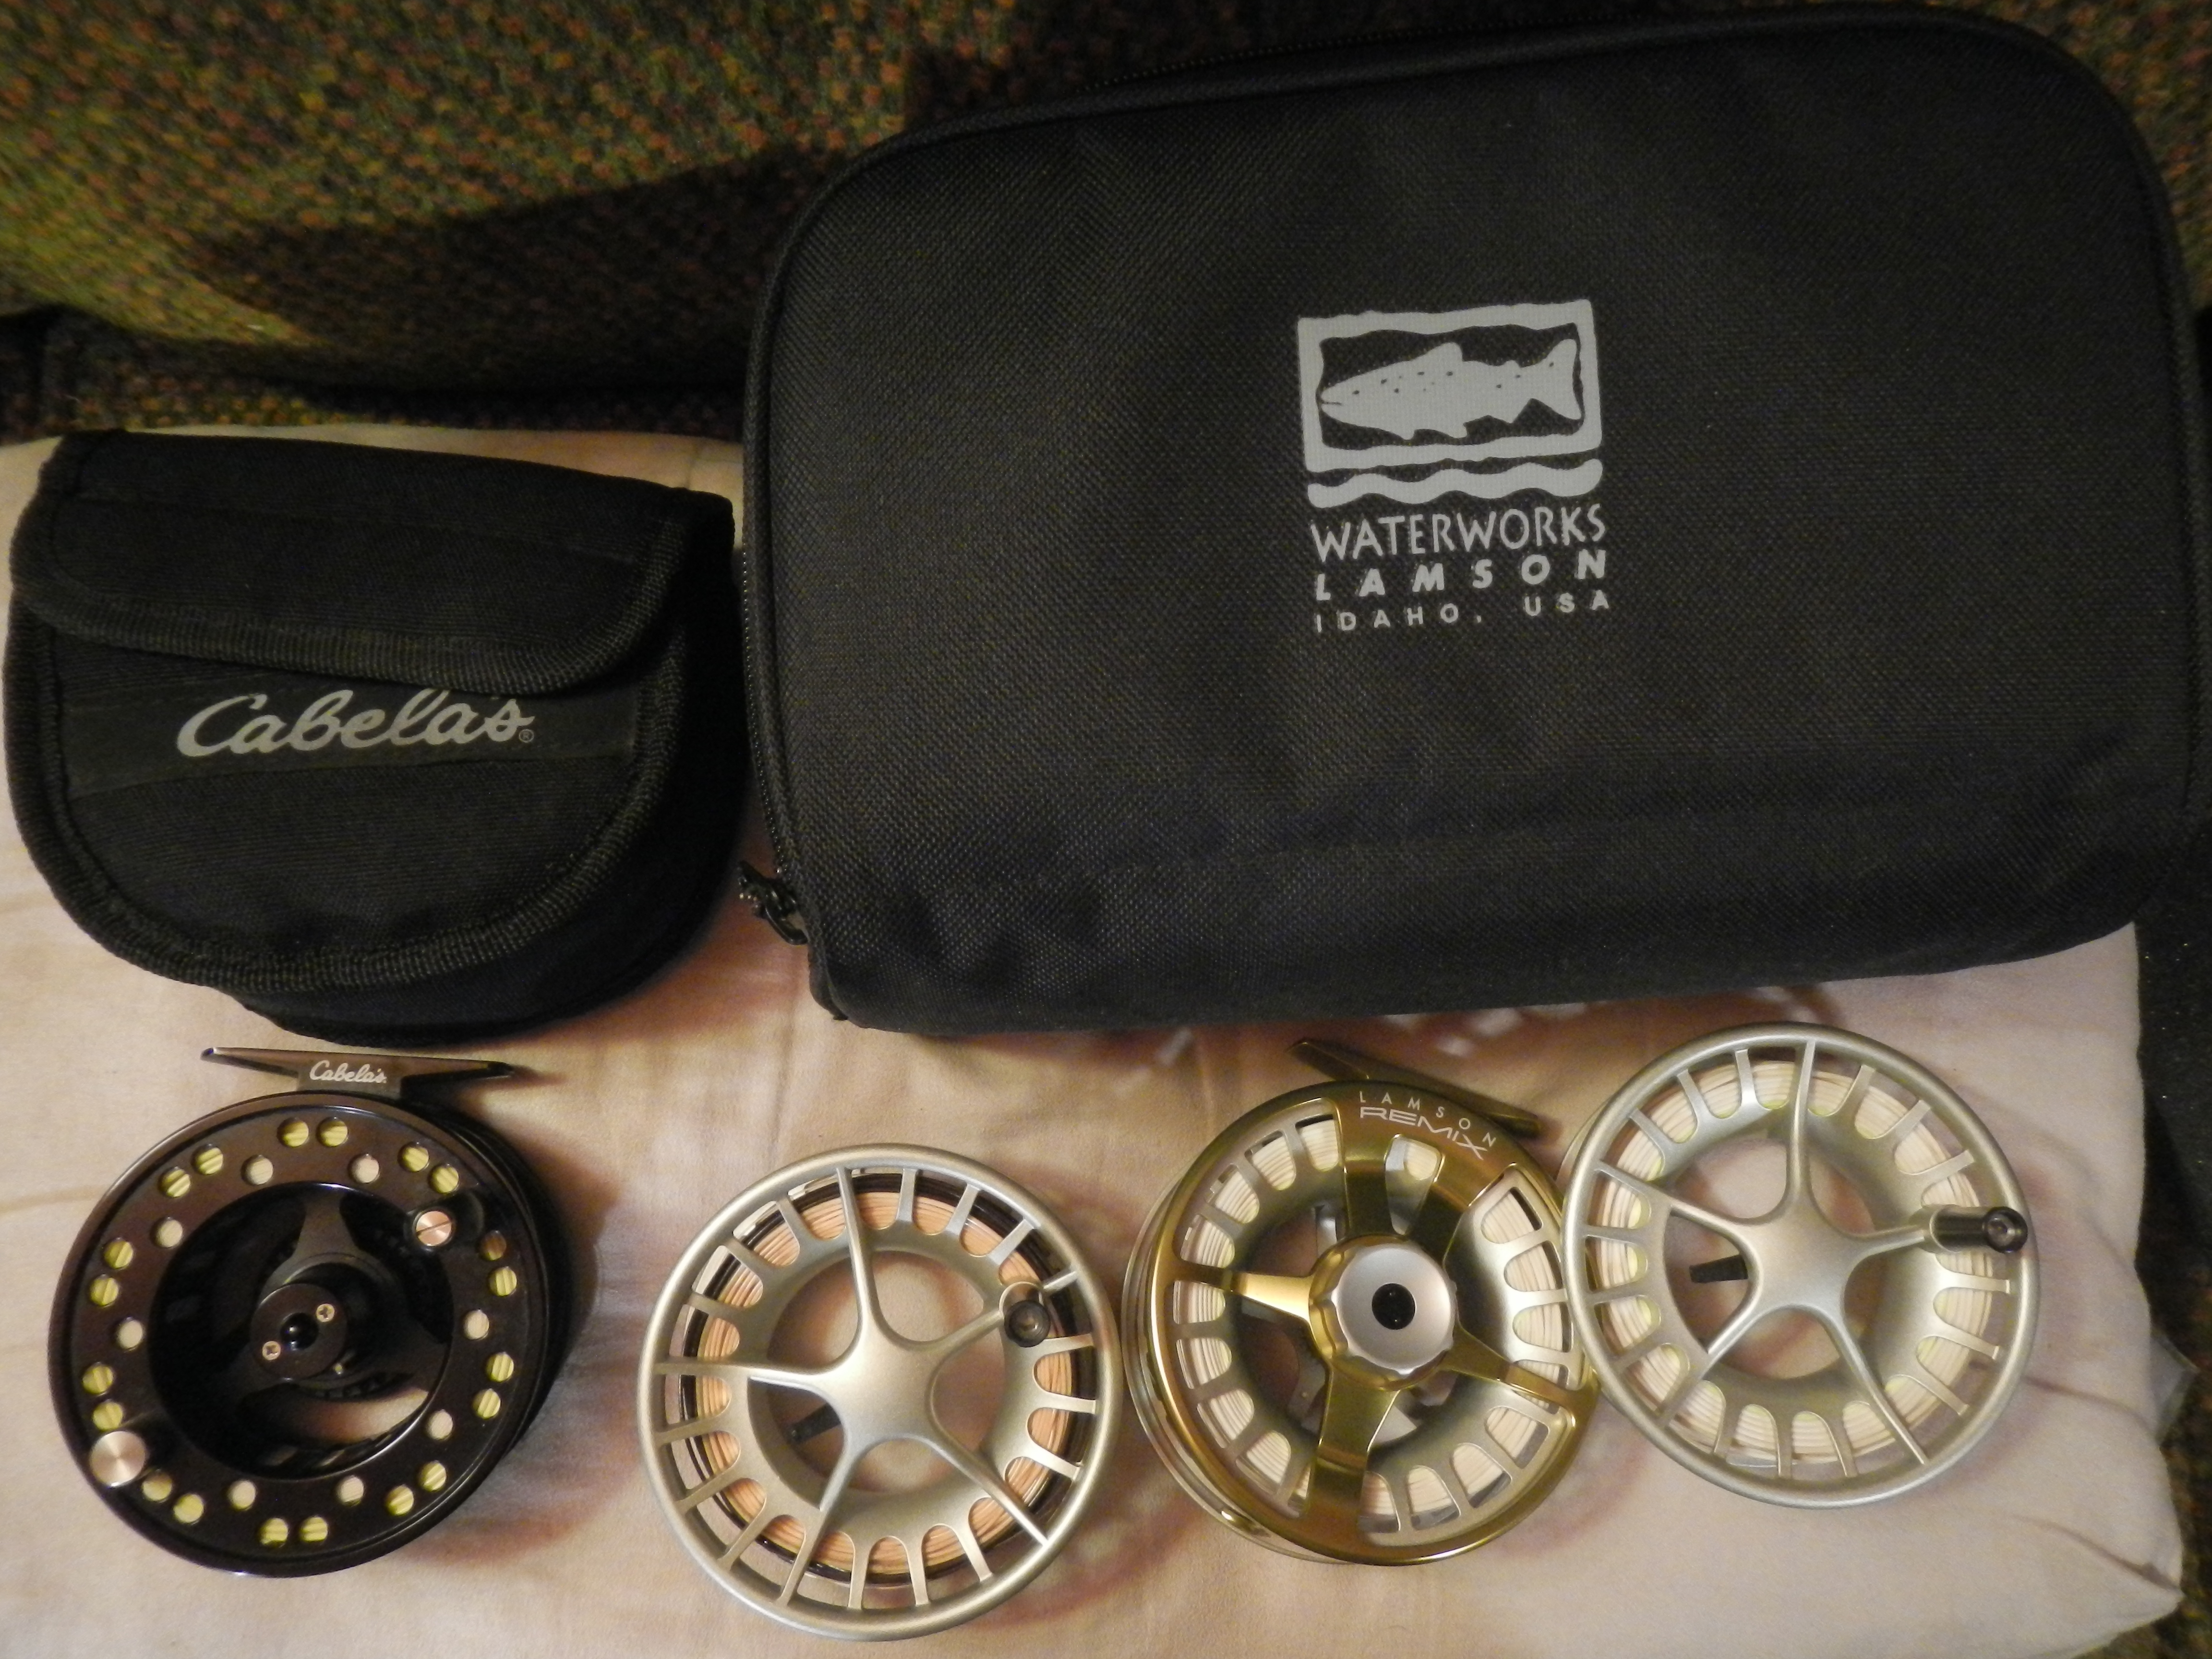 ...the saltwater fly reels are at the ready, and if you count spools they outnumber the spinning reels! Yup, the Lamson 3-pack is new, and loaded with three 7-weight lines I have had for ? long: WF Fl, DT Fl, WF ST